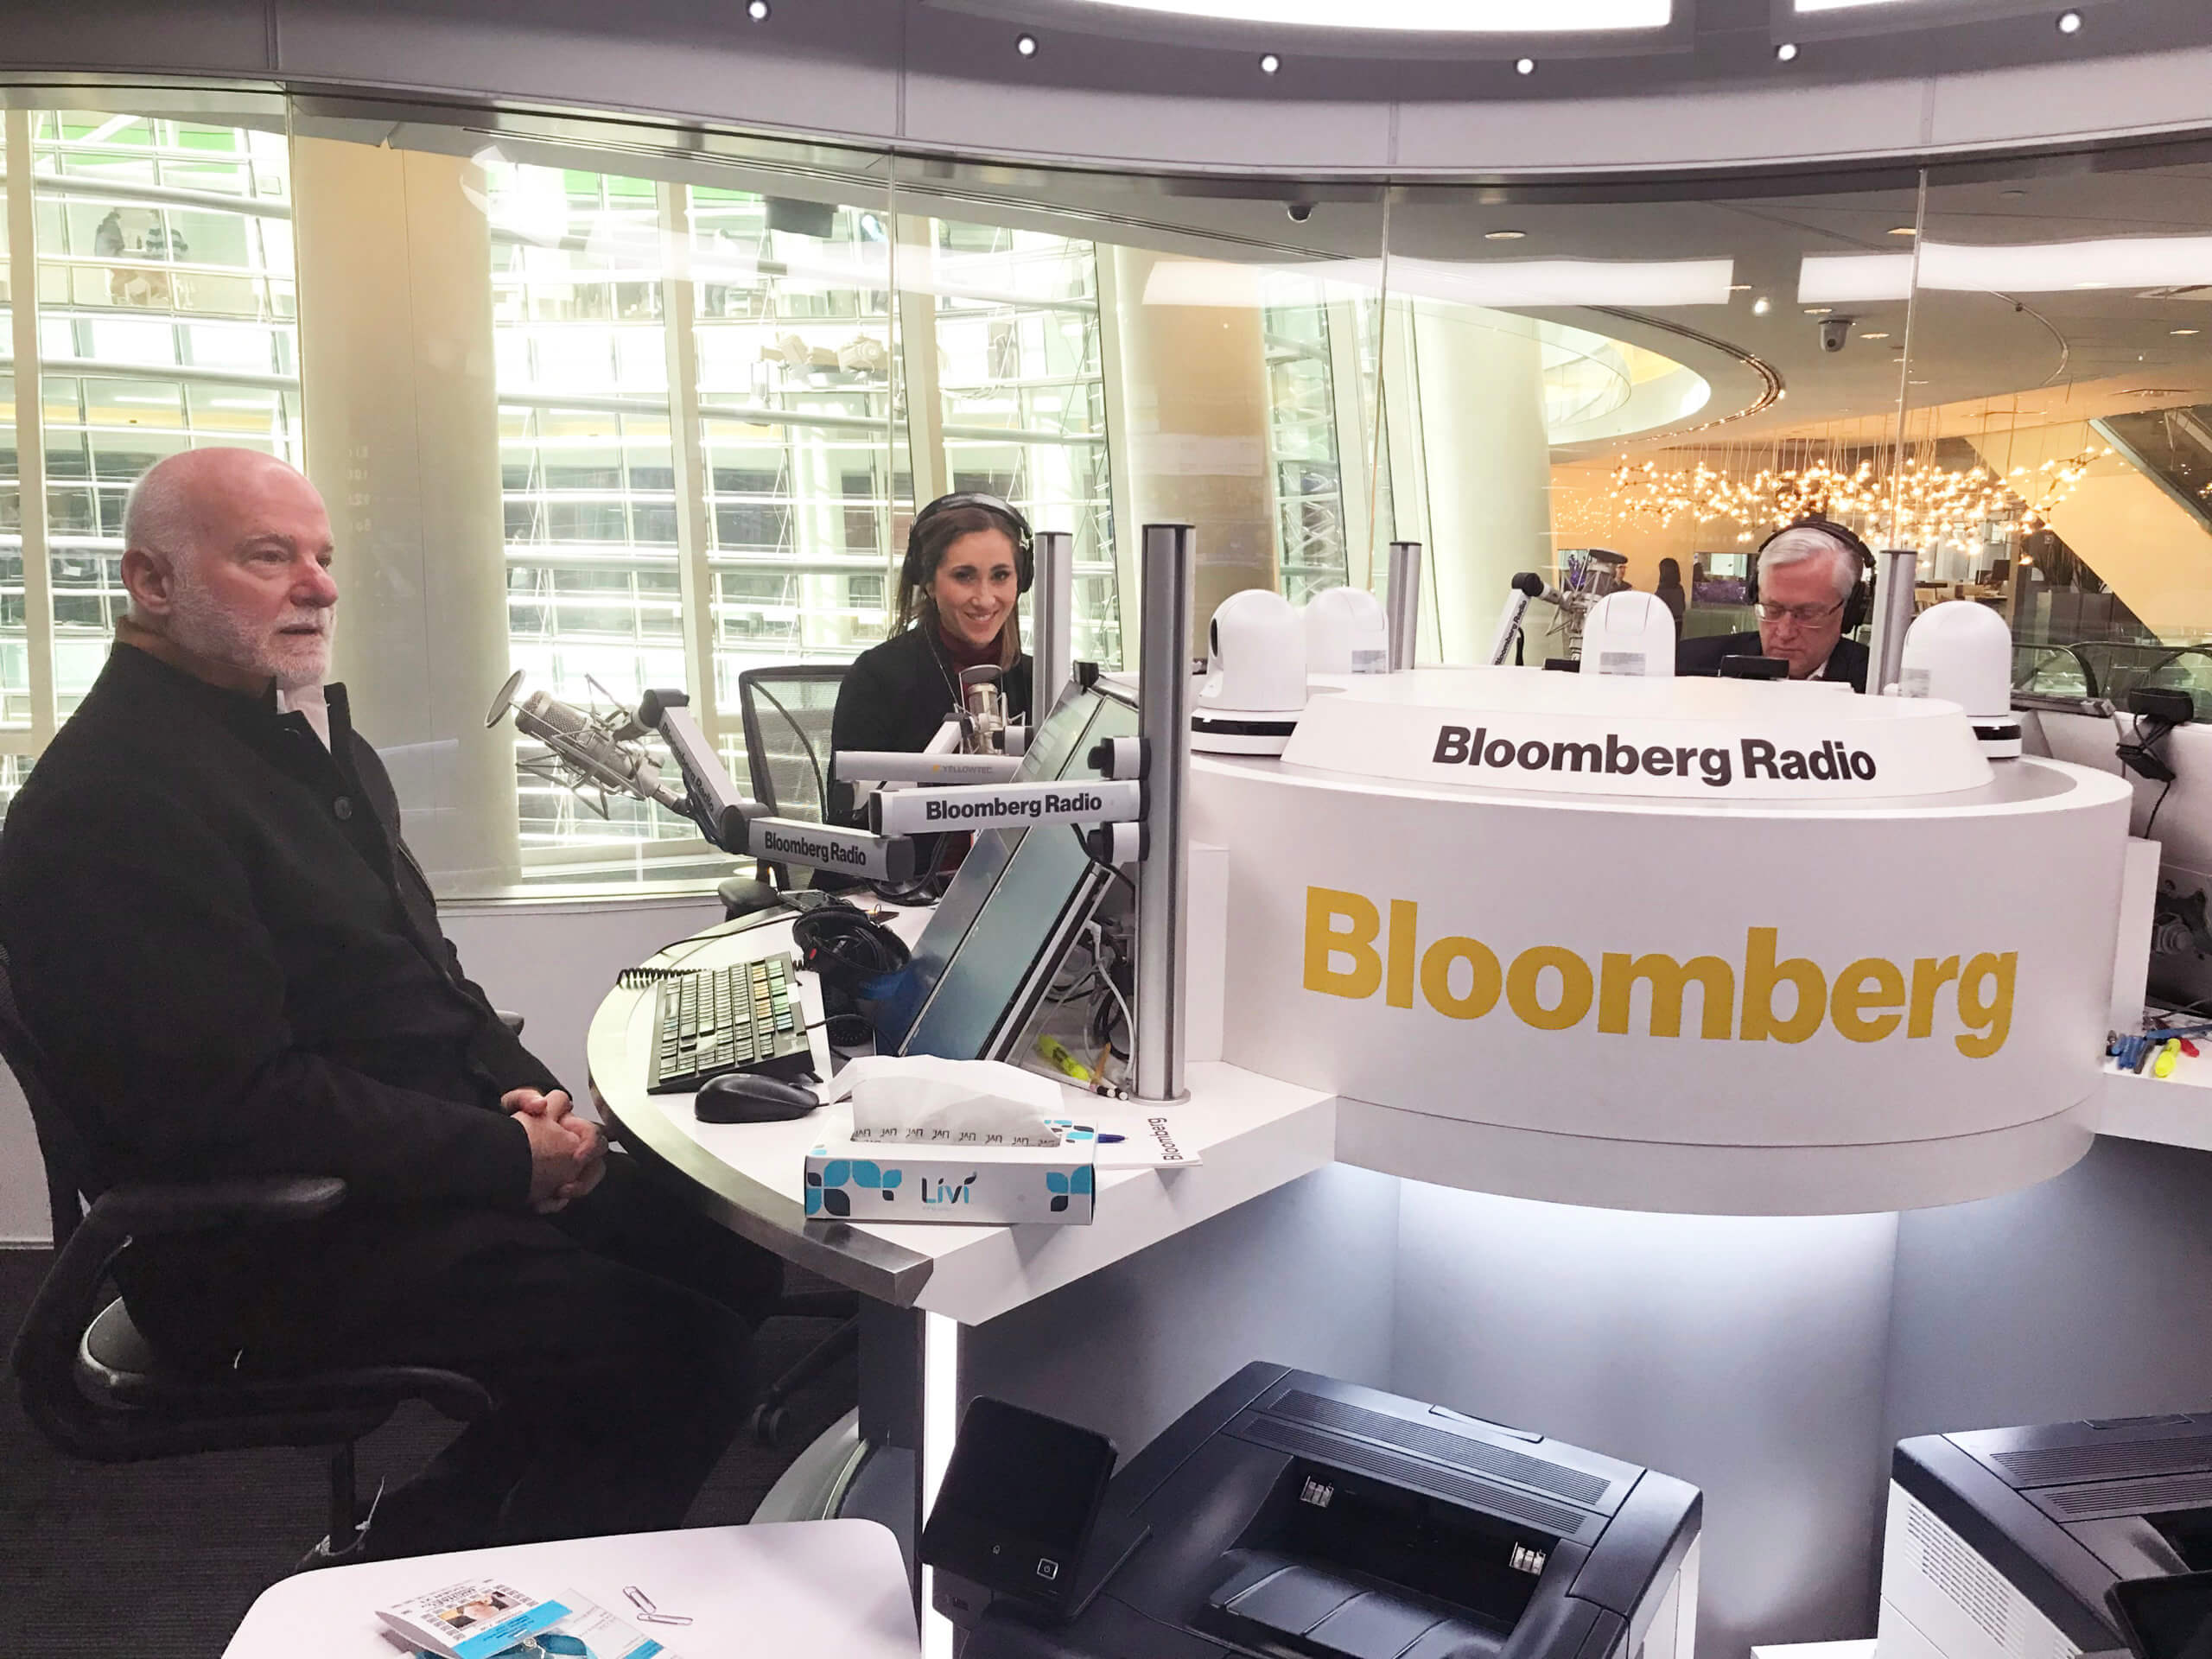 BLOOMBERG RADIO INTERVIEWS TIGER 21 FOUNDER ON PUTTING TOGETHER AN ALL-WEATHER PORTFOLIO